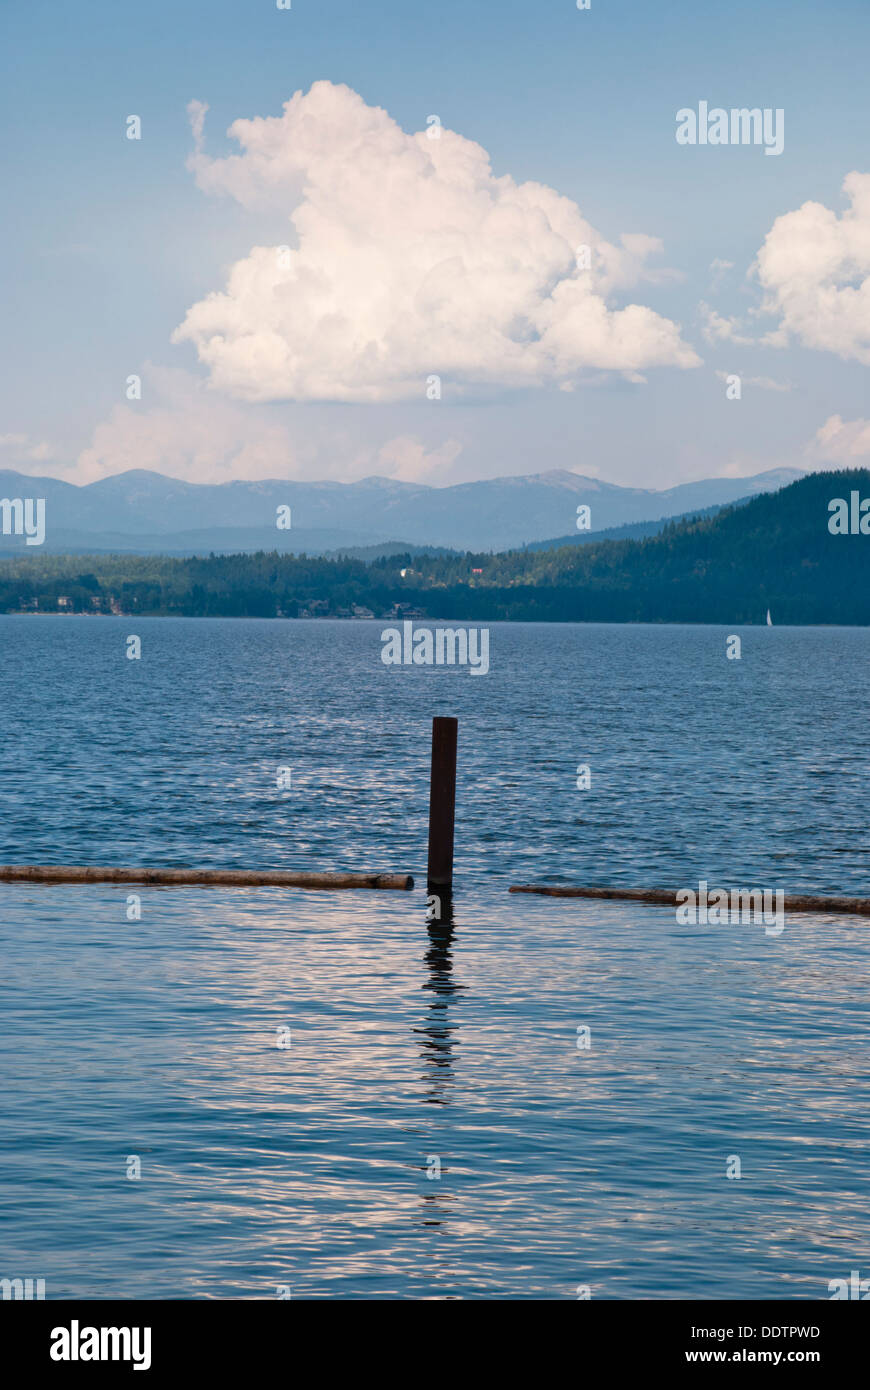 An early evening cloud hovers over Lake Pend Oreille, Sandpoint, Idaho, USA. - Stock Image